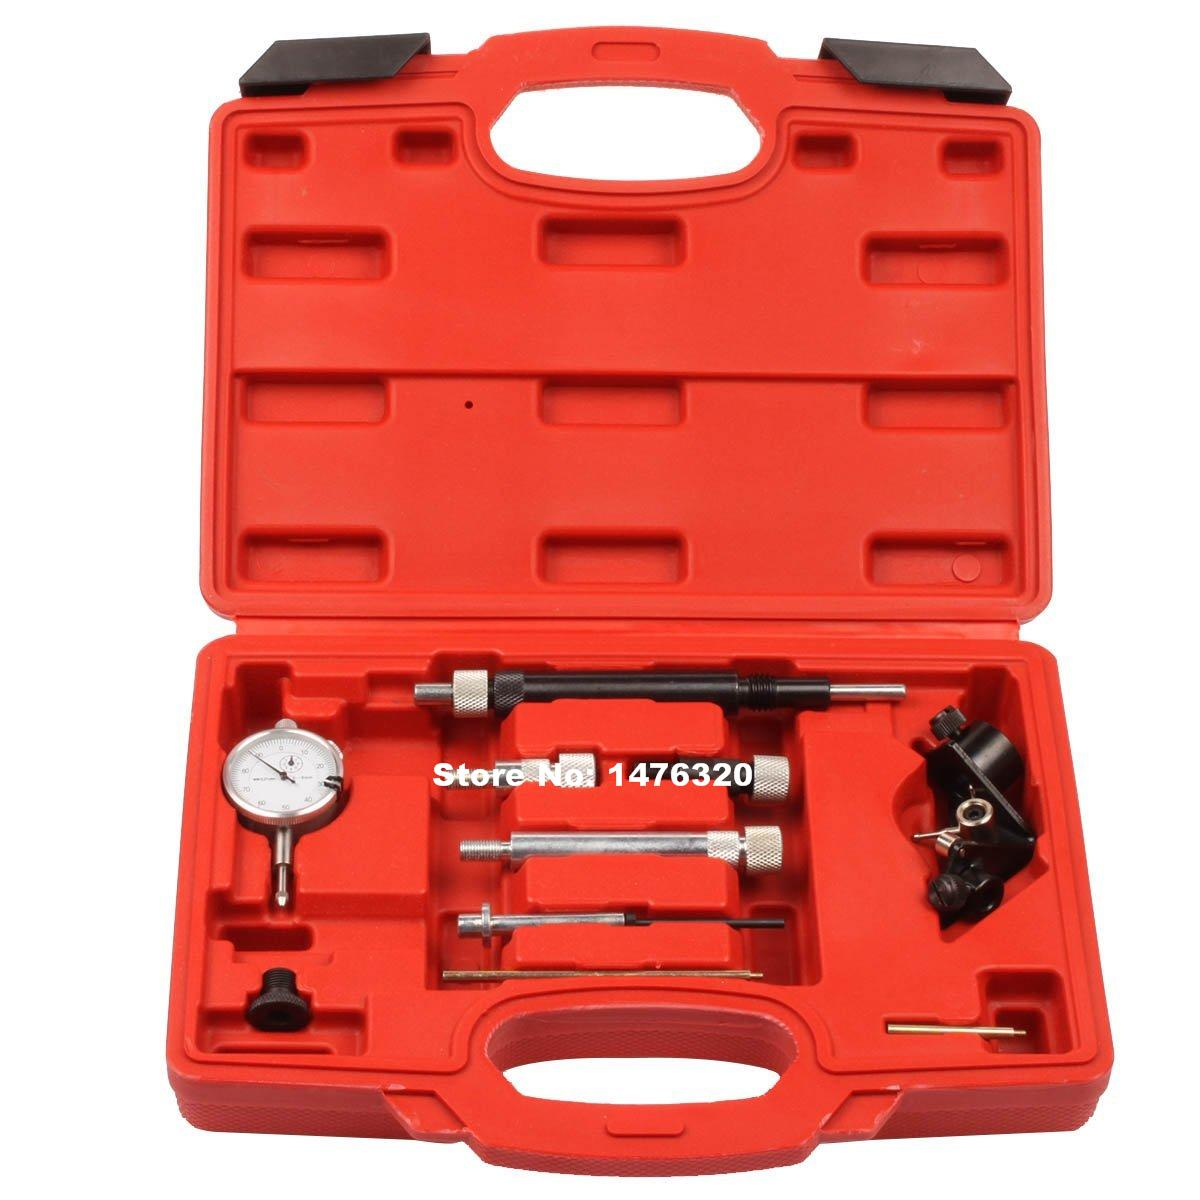 Automotive Engine Diesel Fuel Injection Pump Timing Diagnostic Tester Indicator Gauge Tool Kit AT2175